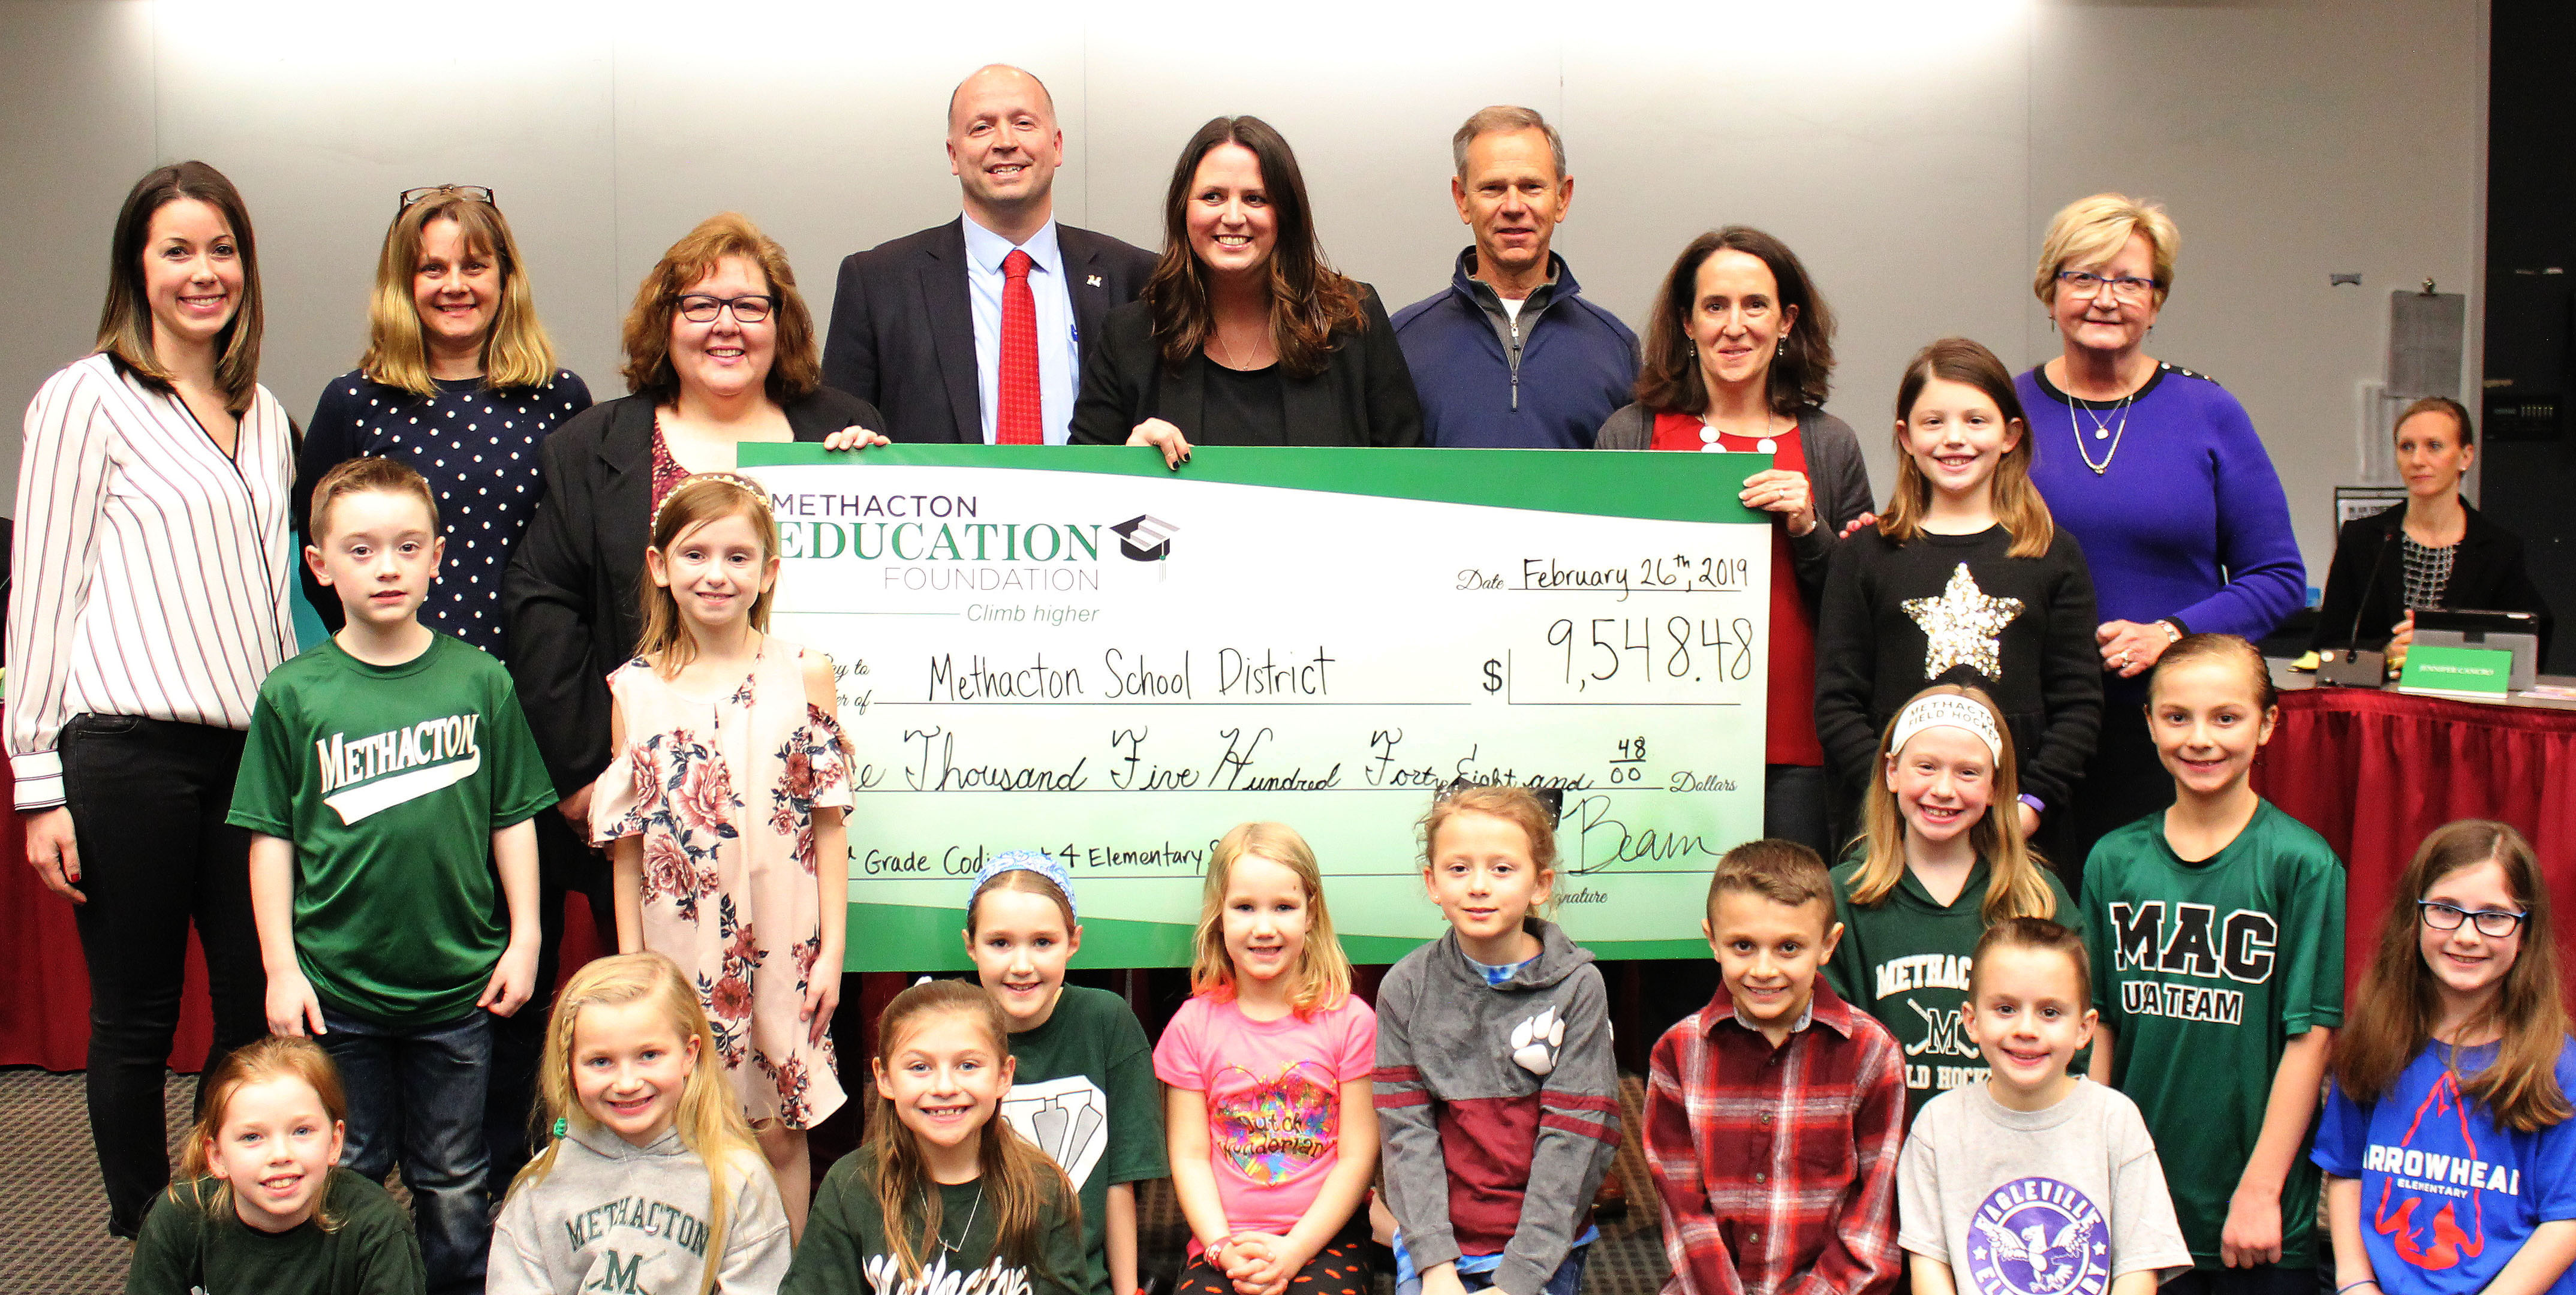 Foundation Awards $9,548 for Coding in 3rd Grade